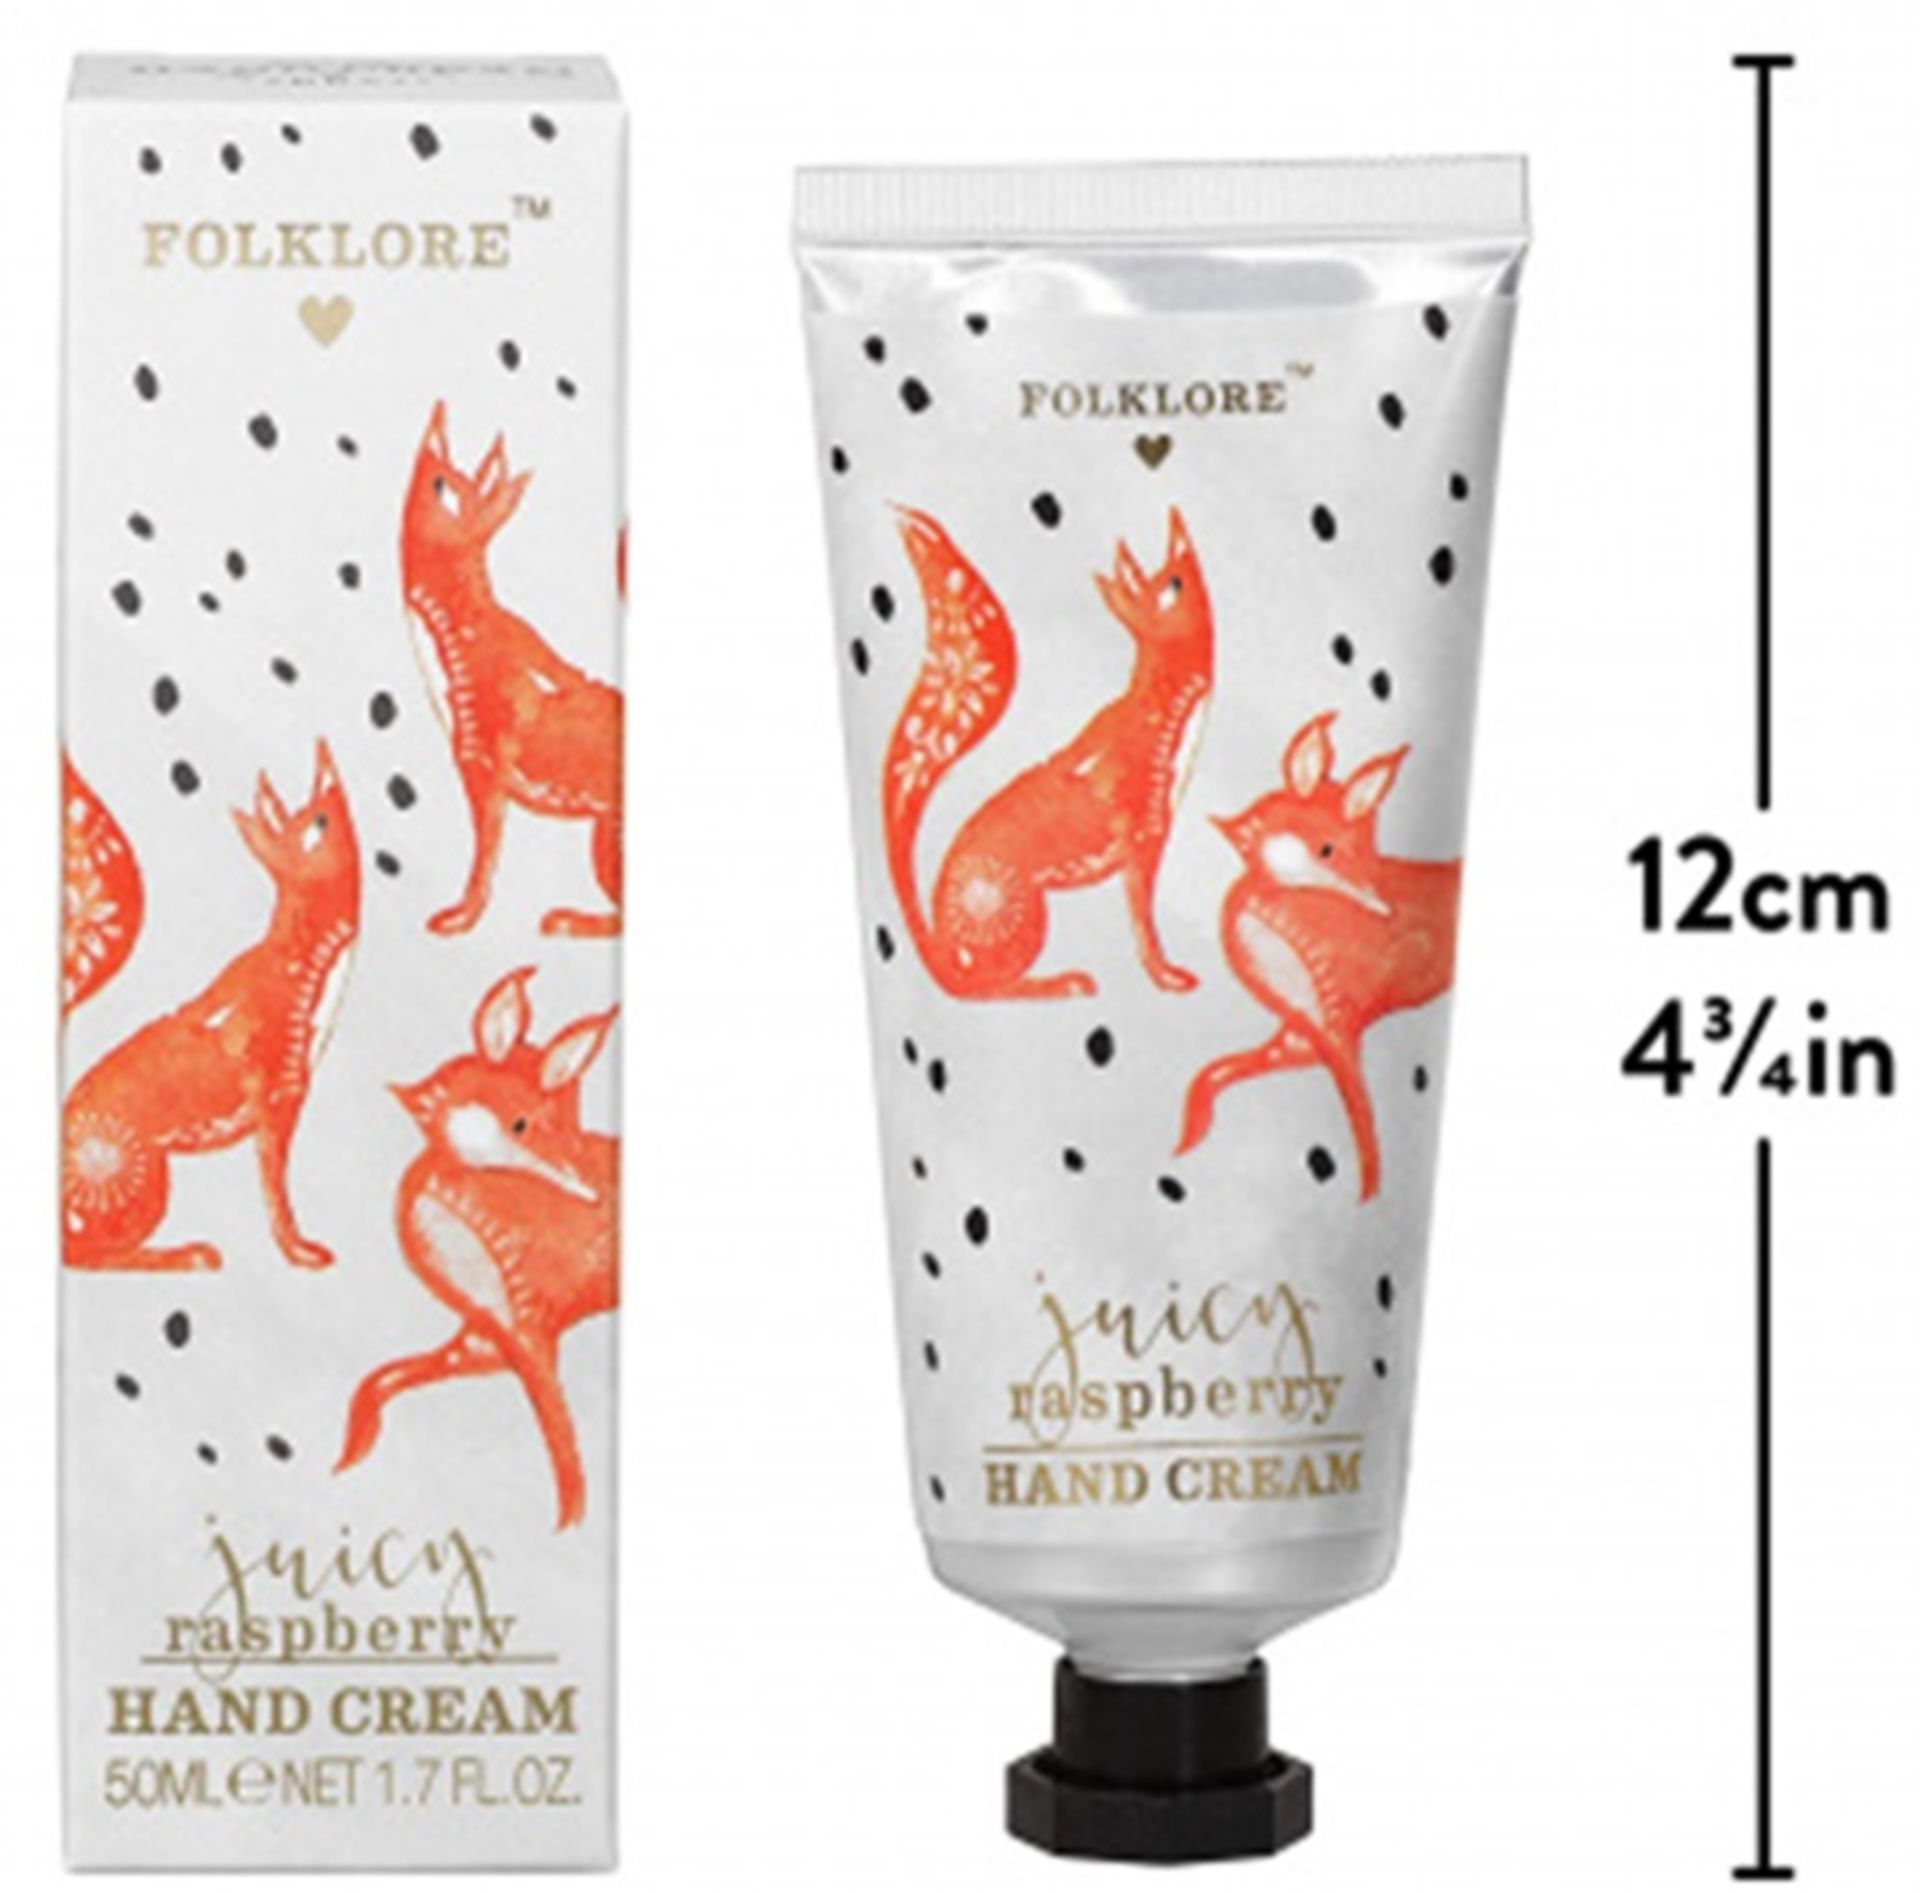 100 x Various Folklore Handcream   50ml   Total RRP £899 - Image 2 of 4